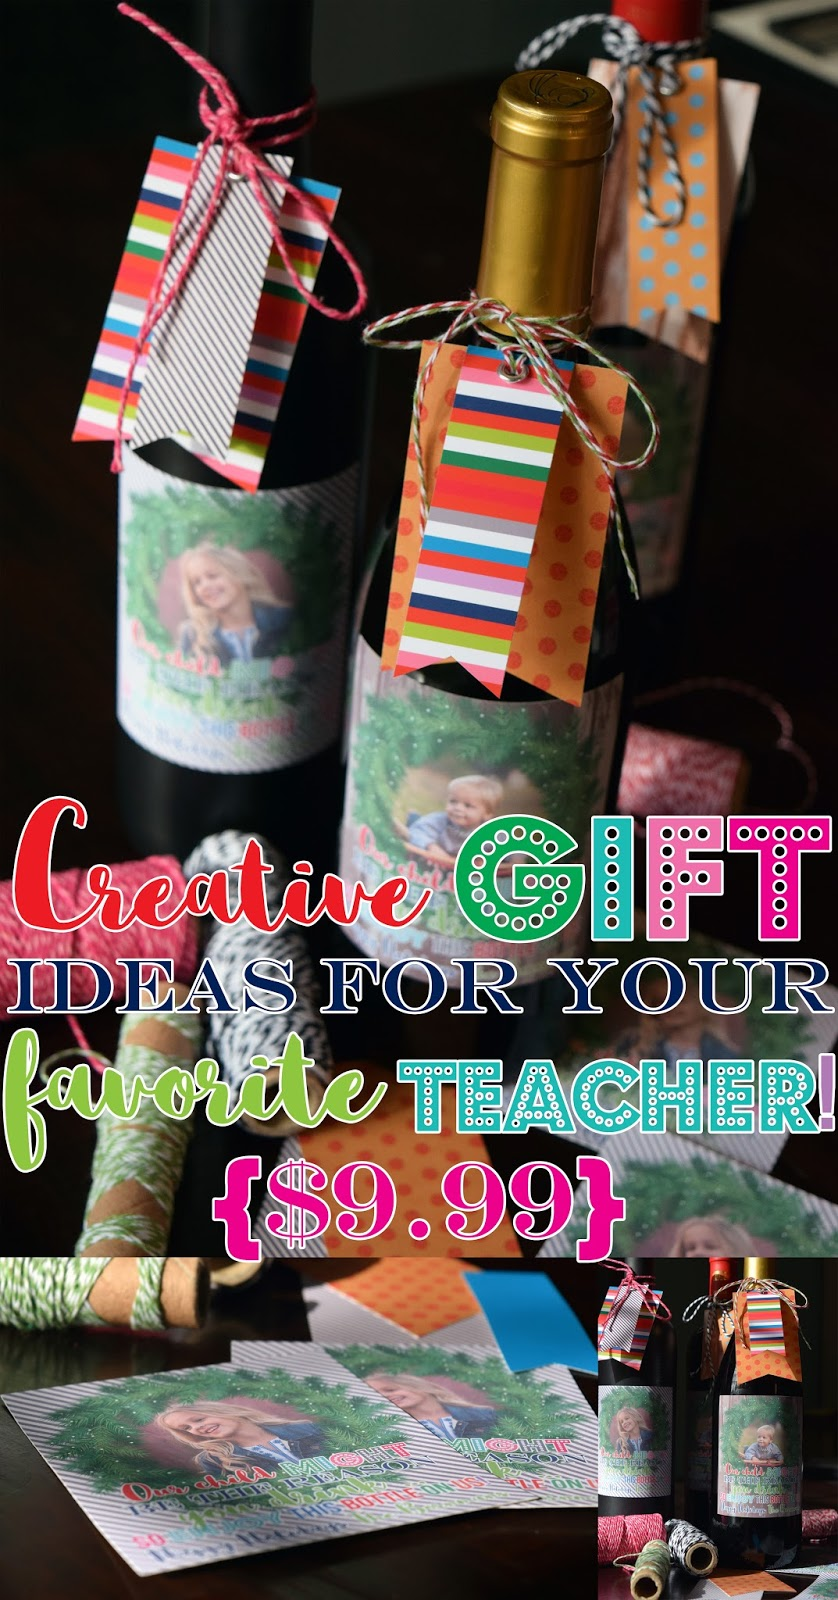 http://www.partyboxdesign.com/item_1995/Teachers-Holiday-Wine-Tags.htm